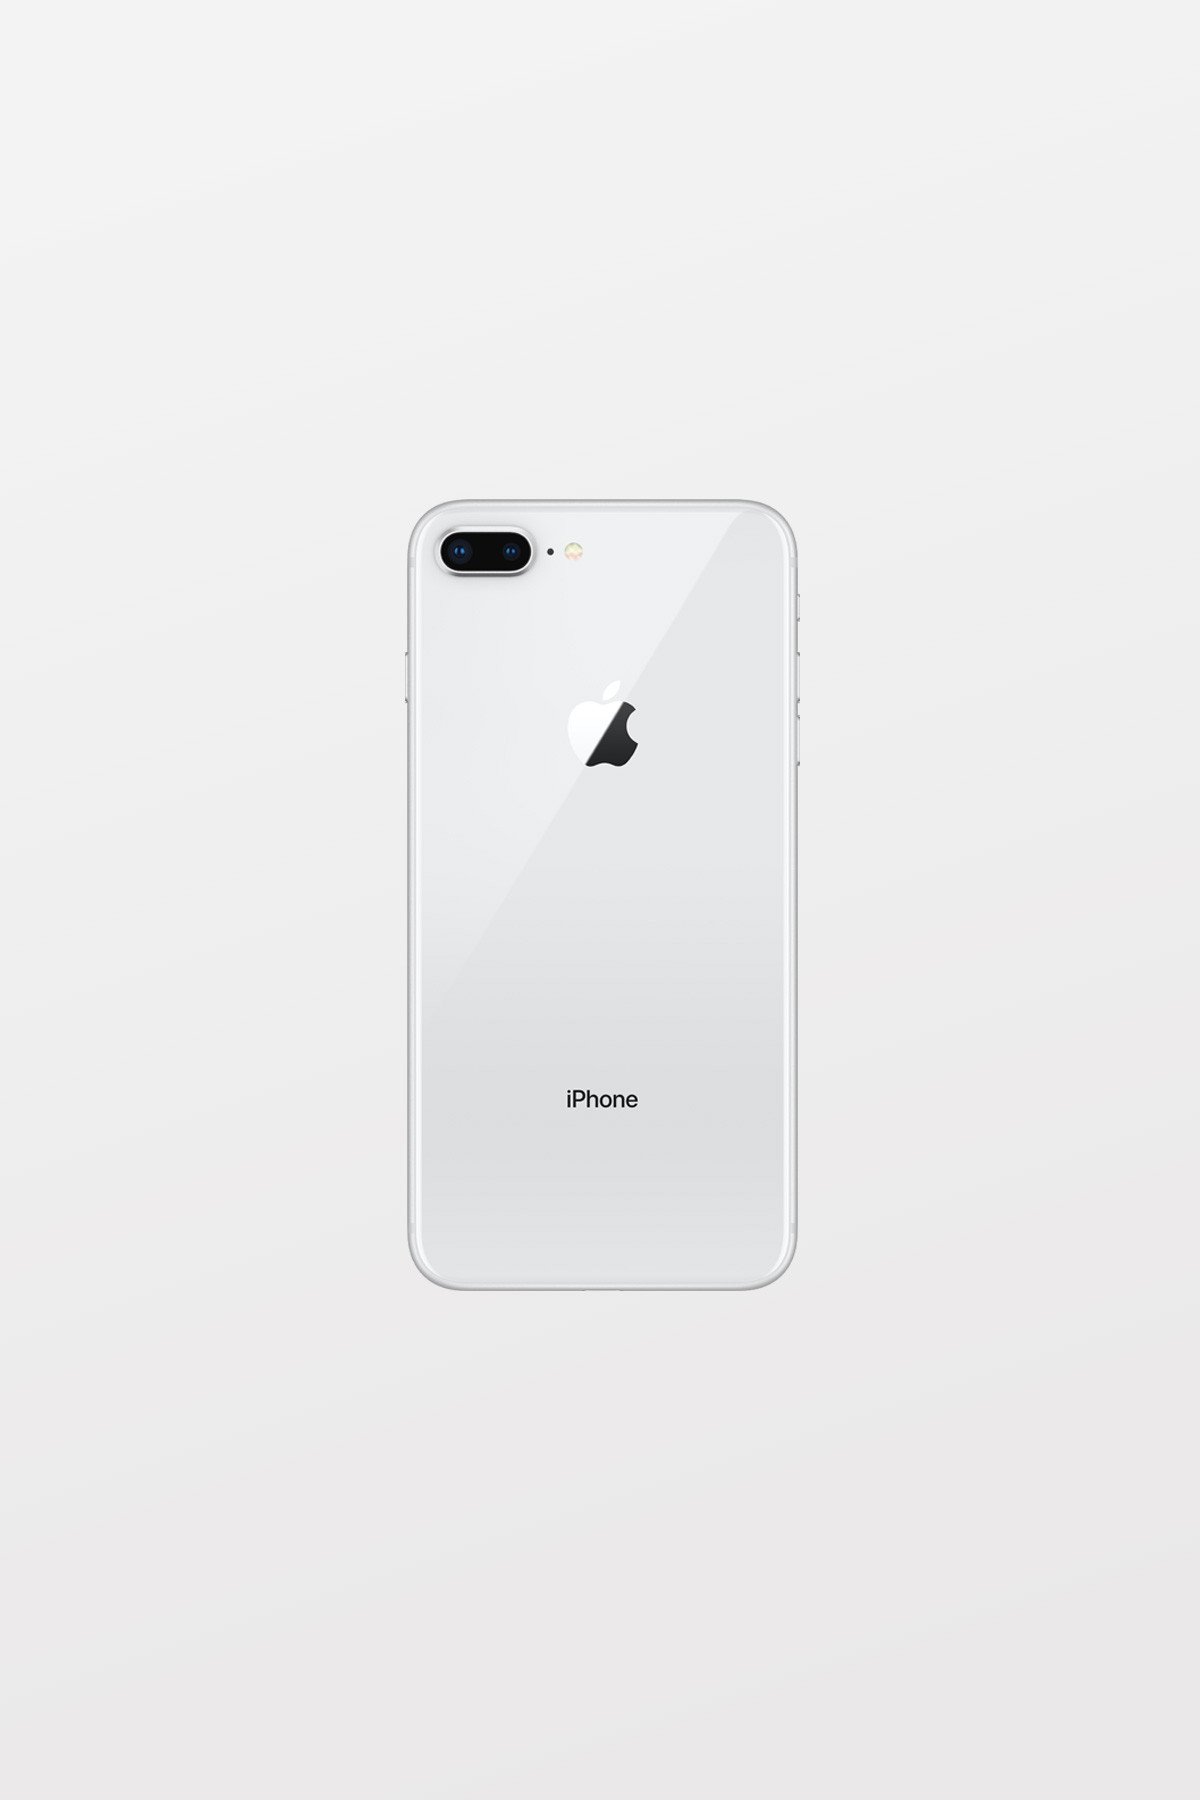 Perhaps unsurprisingly, in many cases buying direct from Apple – either through the online store or its retail chain — provides the widest selection of options and the chances for discounts.